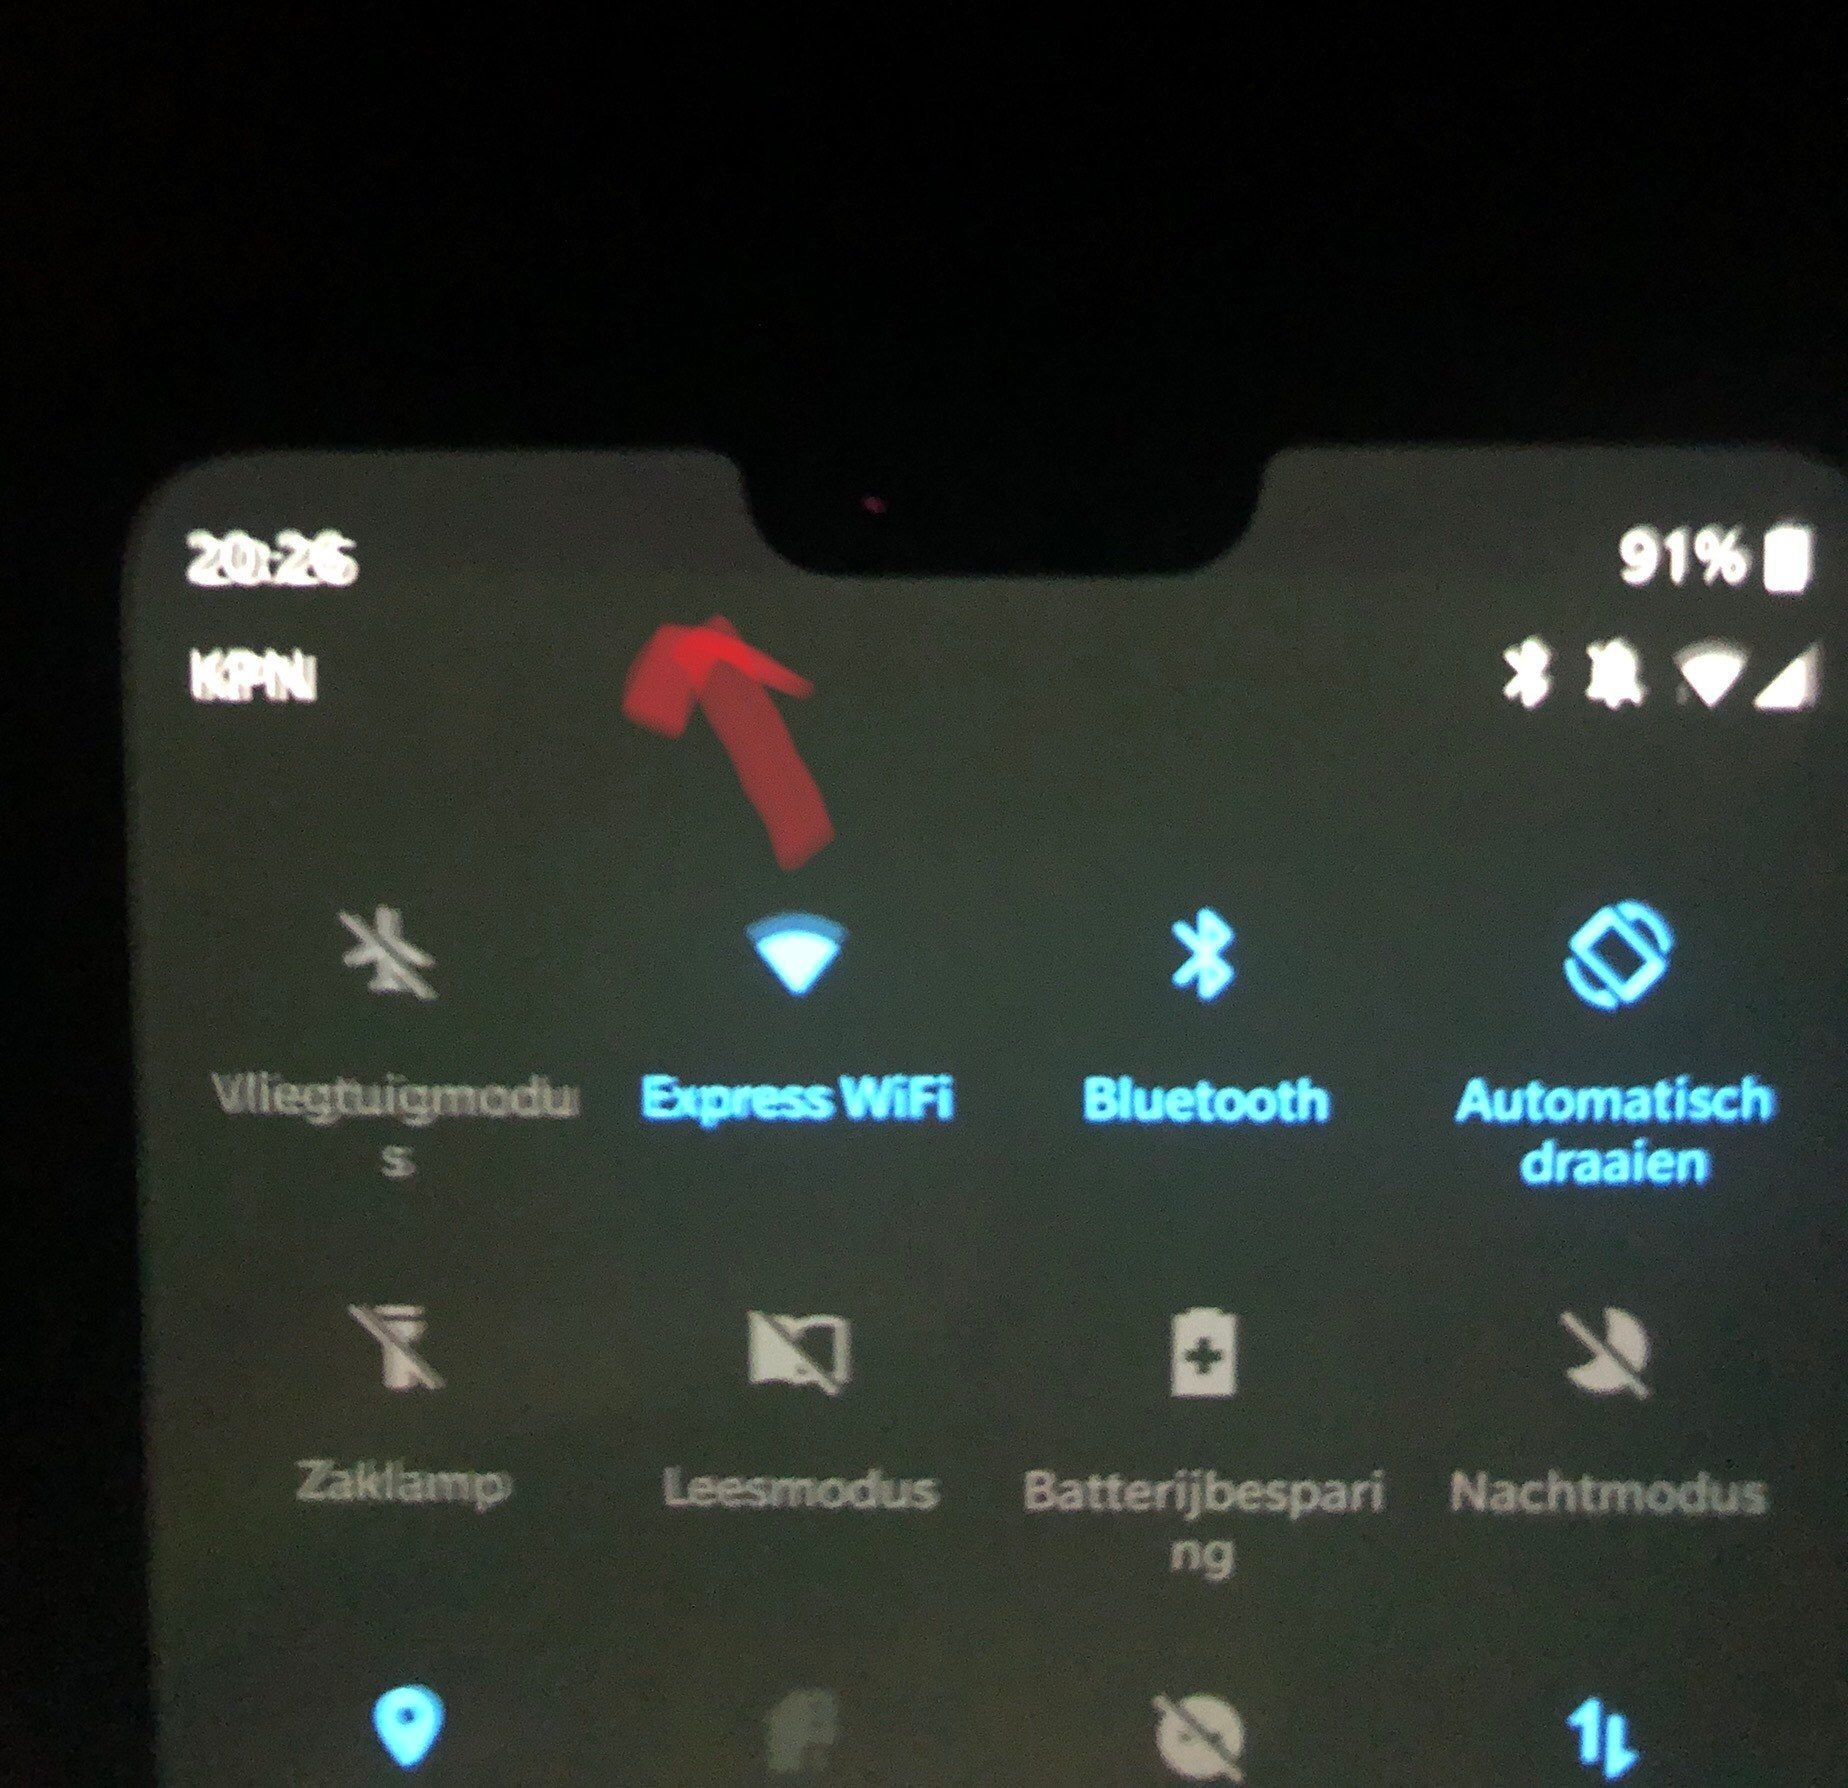 Will burn-in be caused by the OnePlus 6 Top Bar (Hide Notch